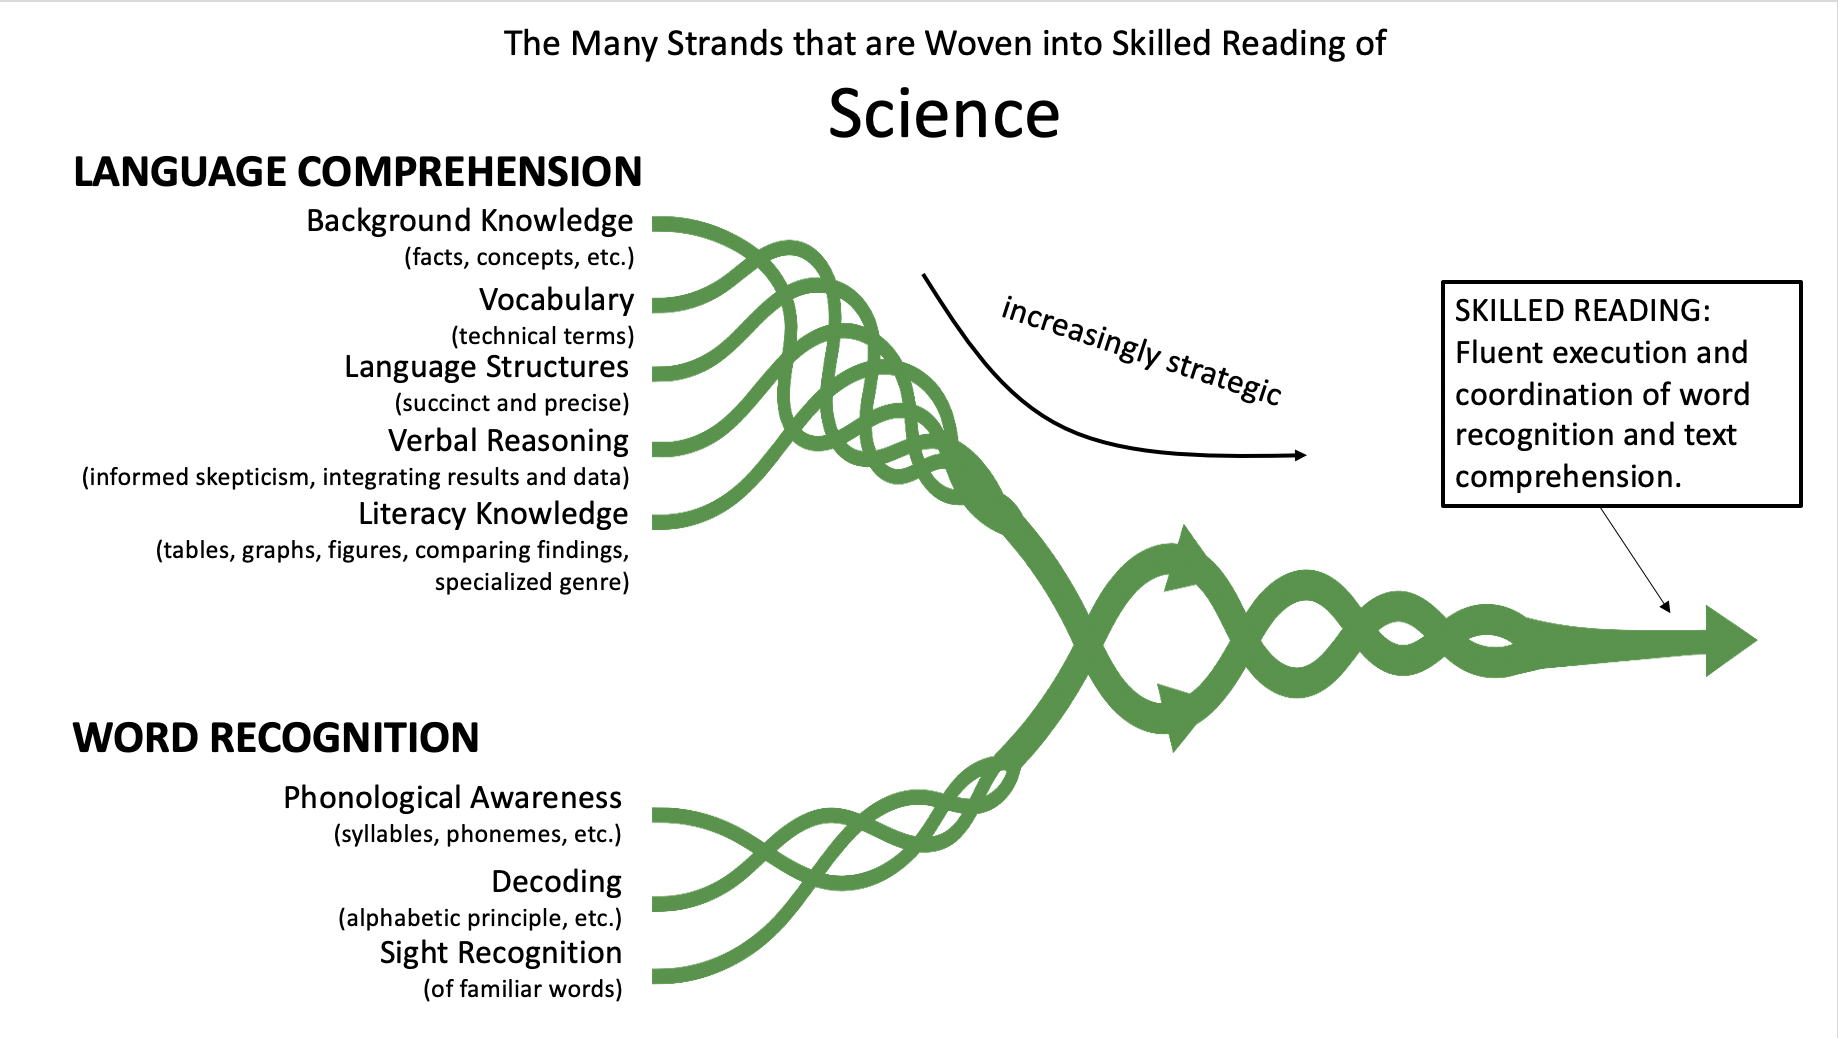 The Many Strands of Skilled Reading in Science